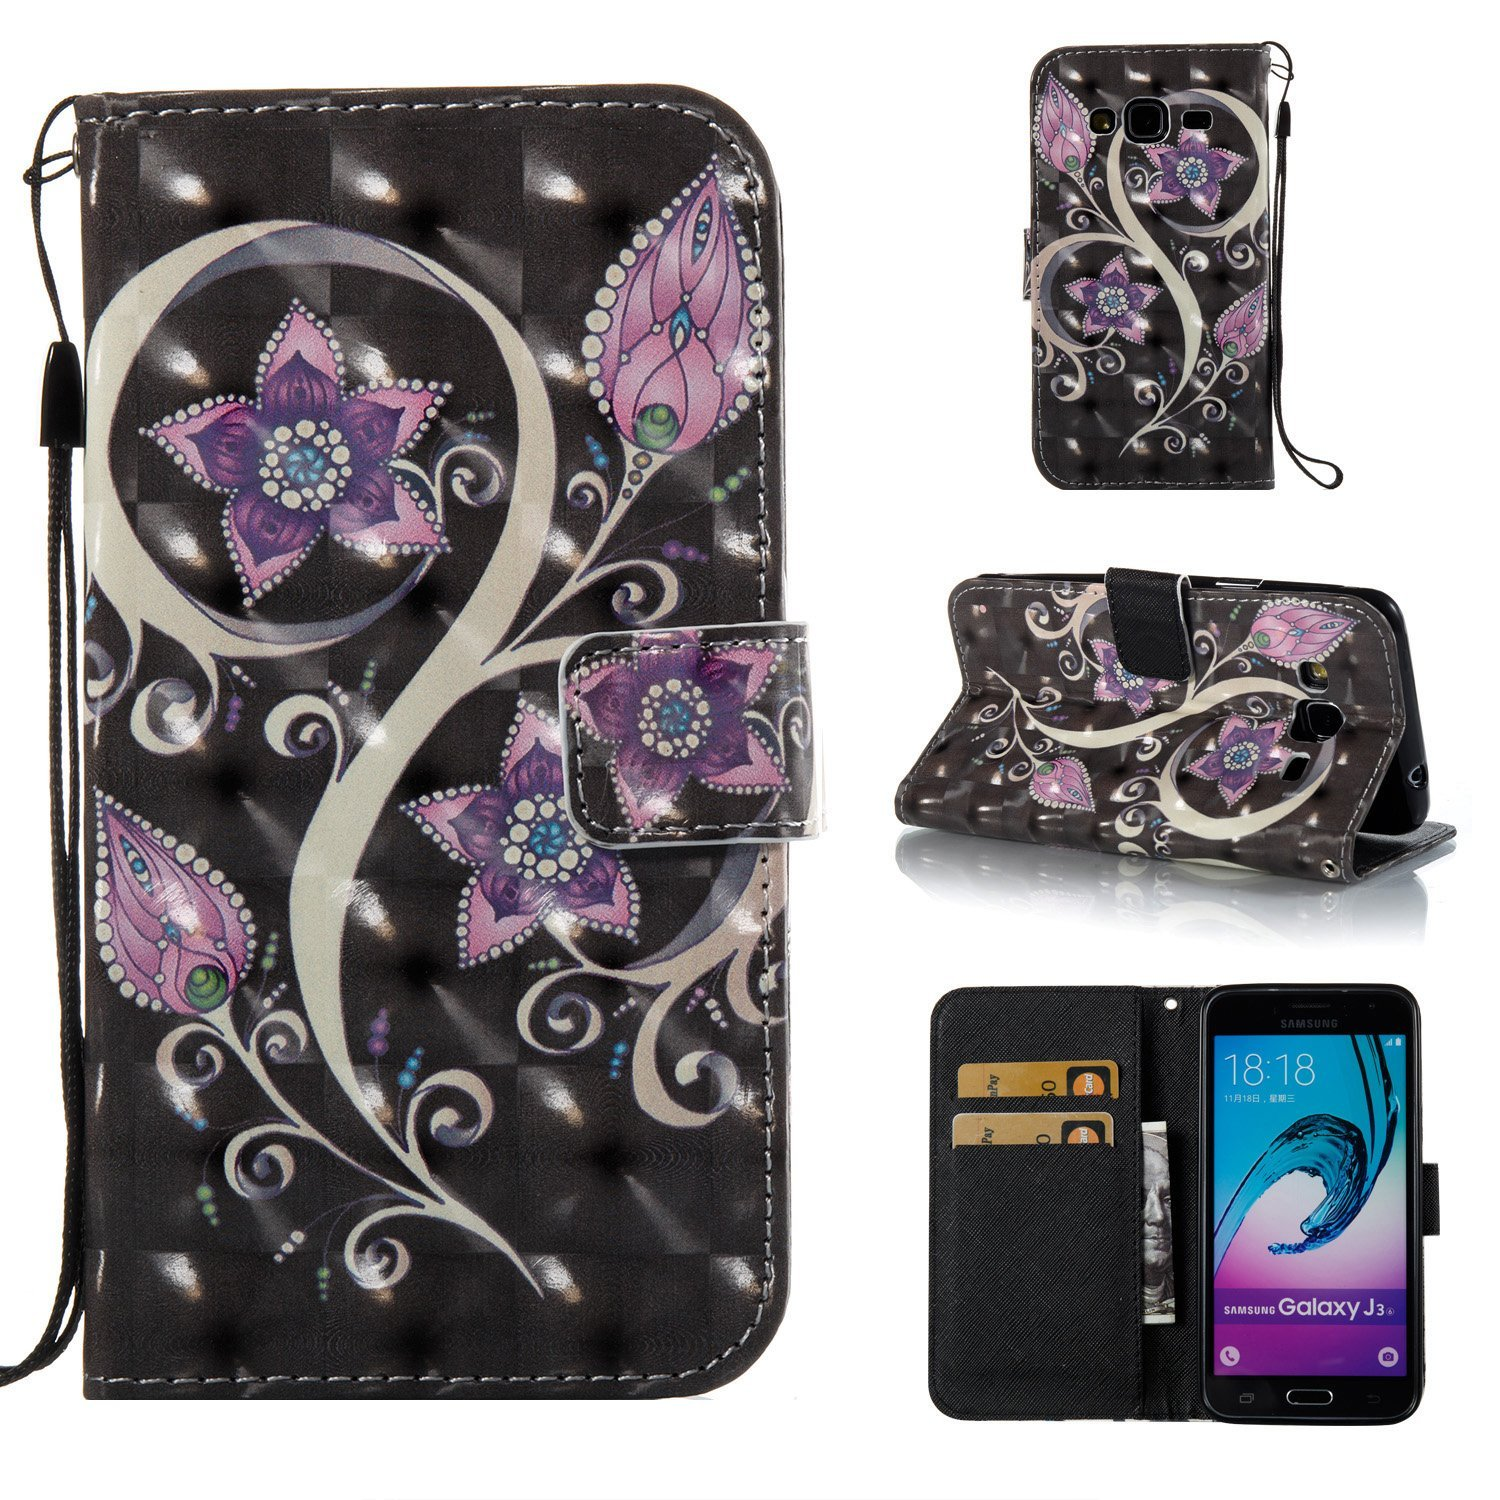 Galaxy J3 Case, Galaxy Amp Prime Case, Galaxy Express Prime Case, Ranyi [3D Painting Wallet] [Bling & Shiny Leather] [ID Holder] [Kickstand Feature] Magnetic Flip Folio Wallet Case (peacock flower)